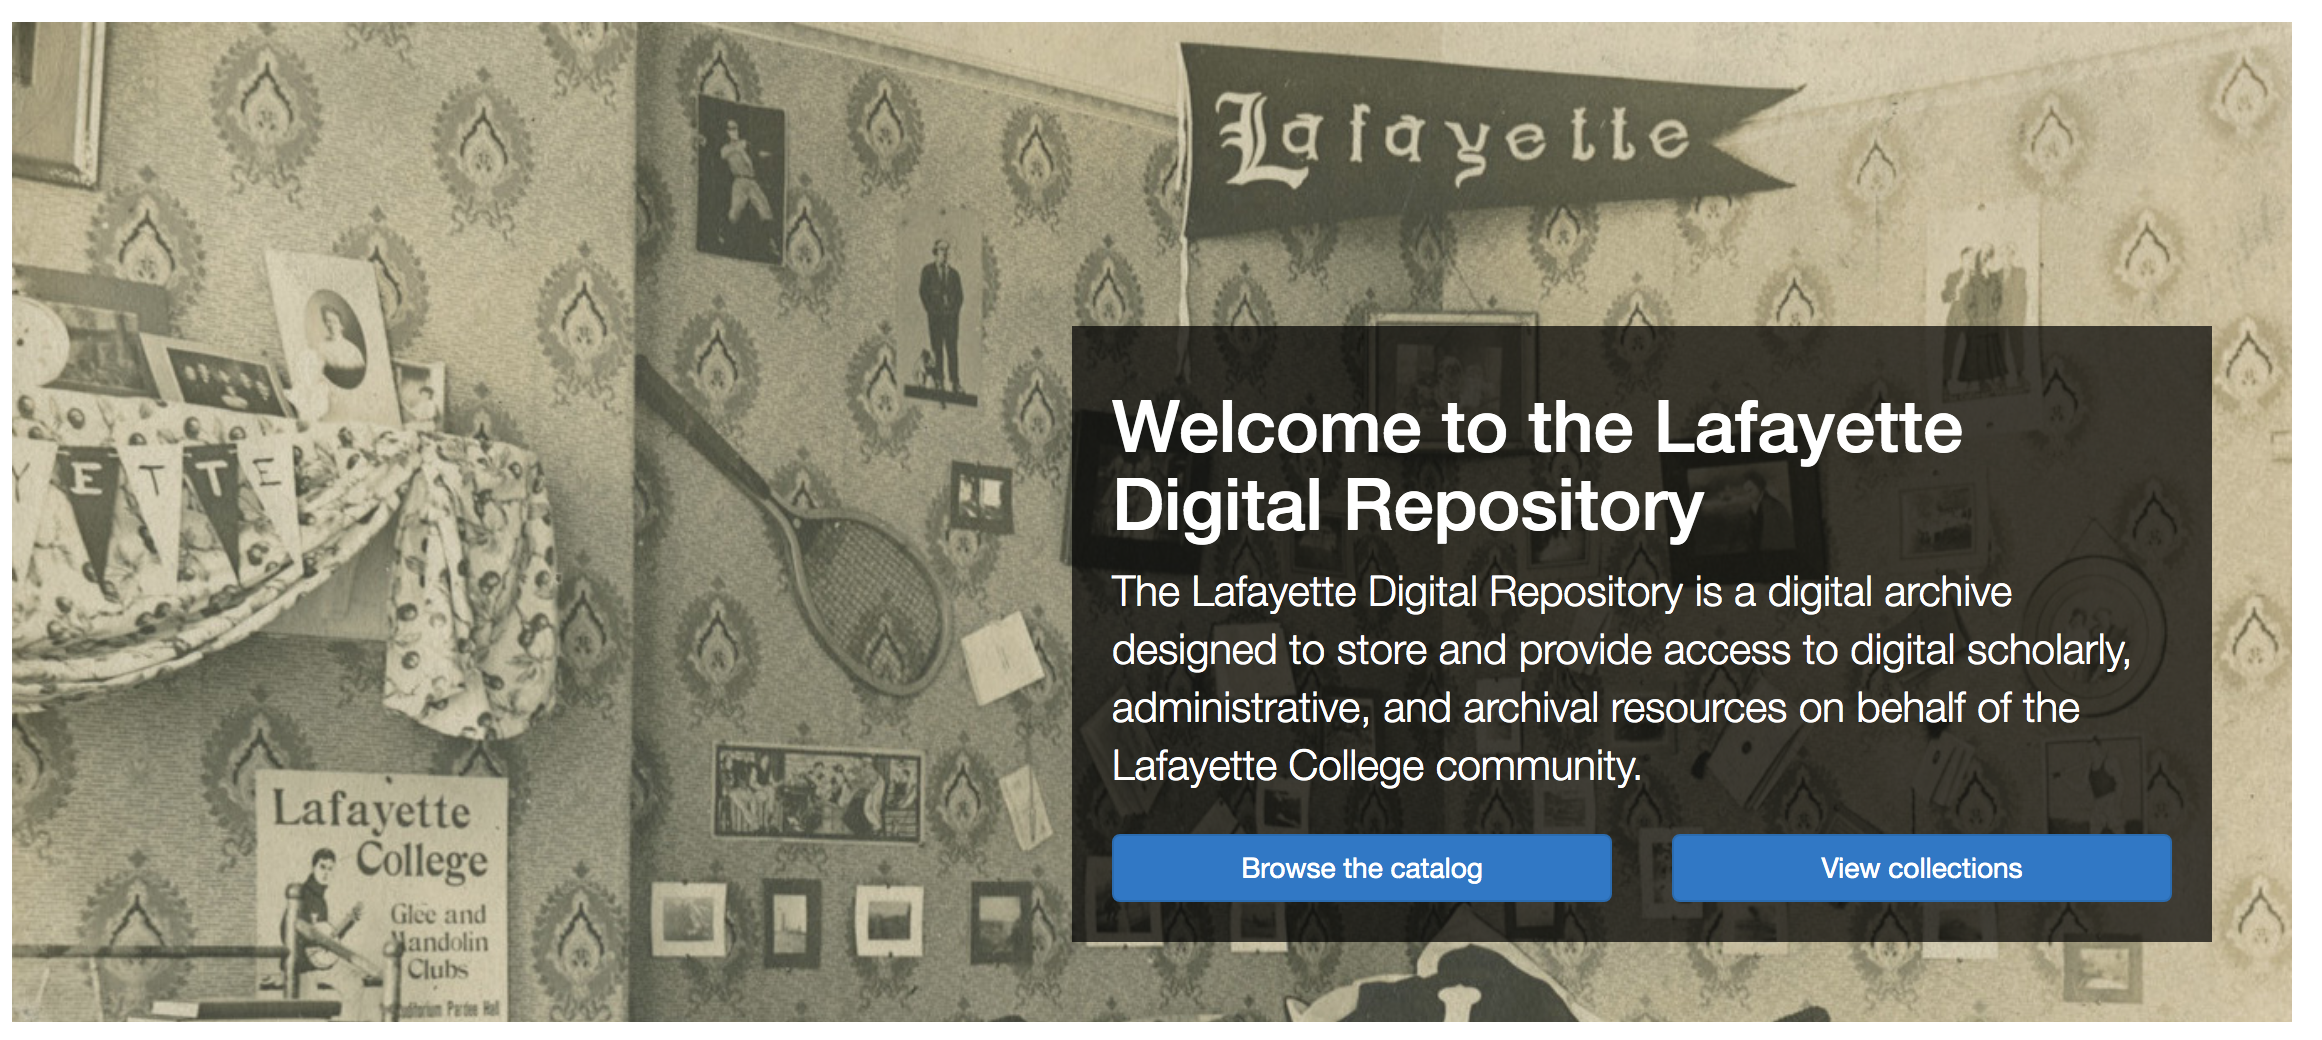 Screenshot of landing page of repository, featuring historic image of Lafayette flags